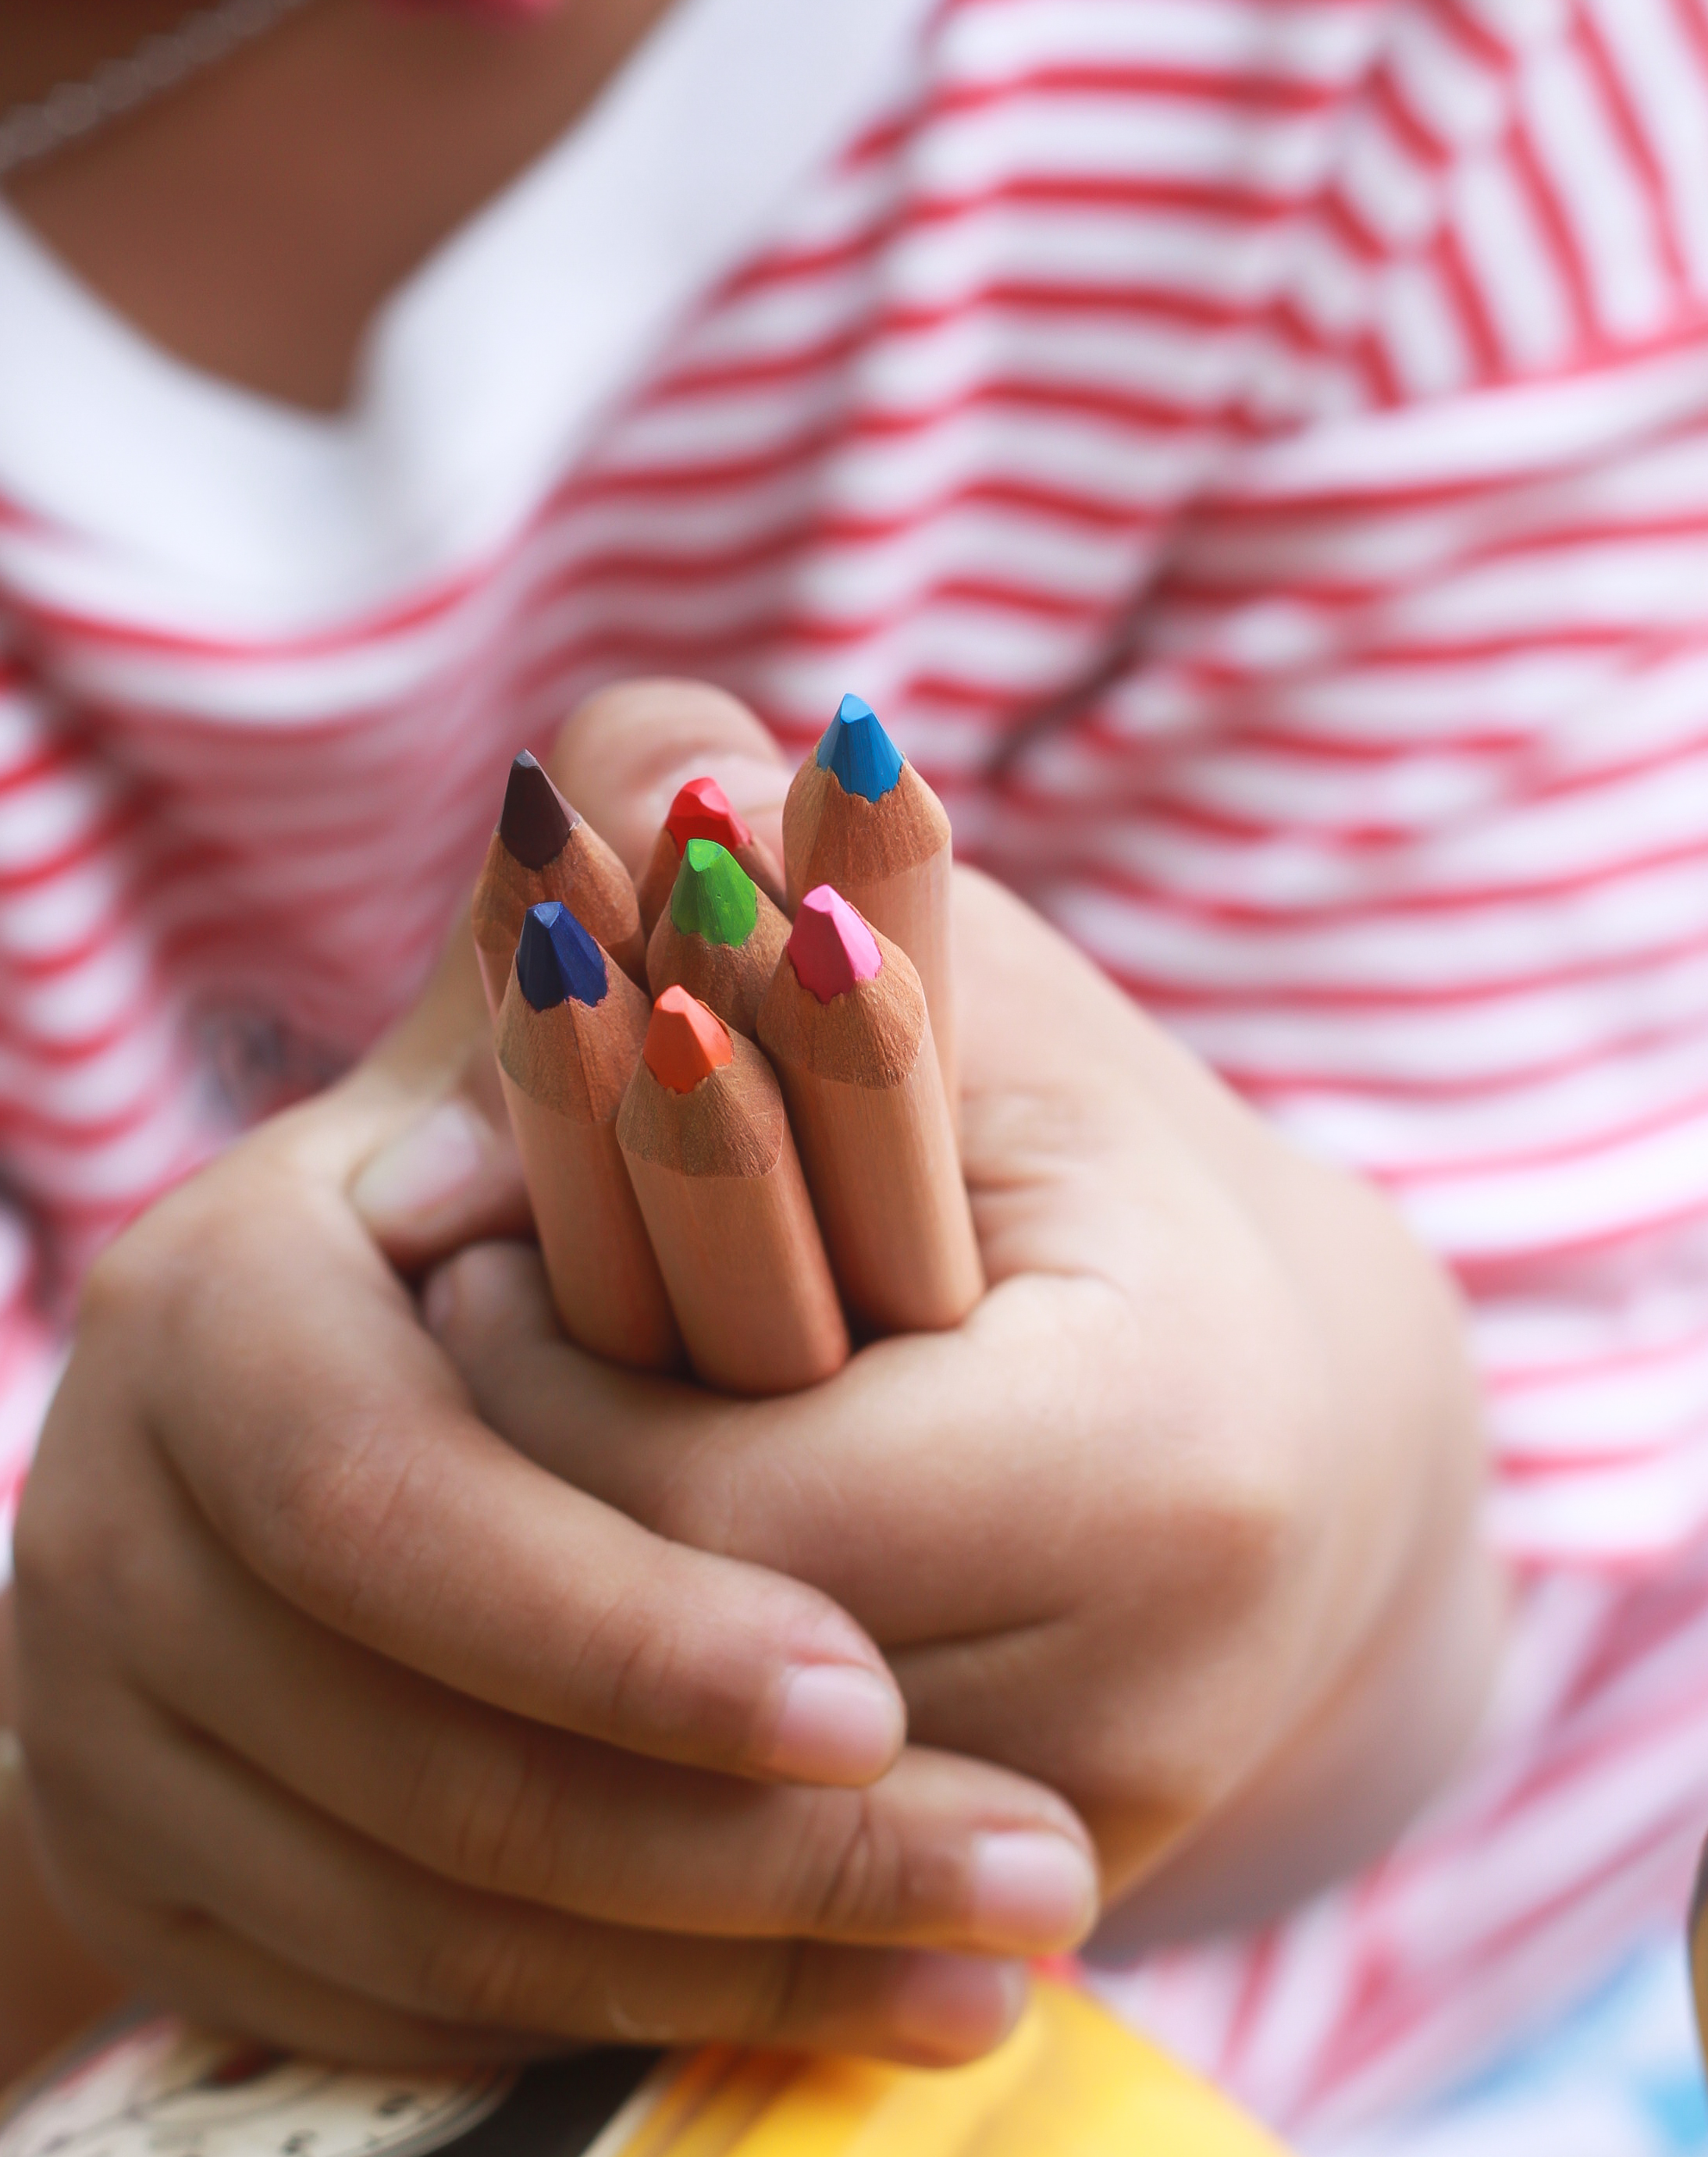 A child hold color pencils with a little hand